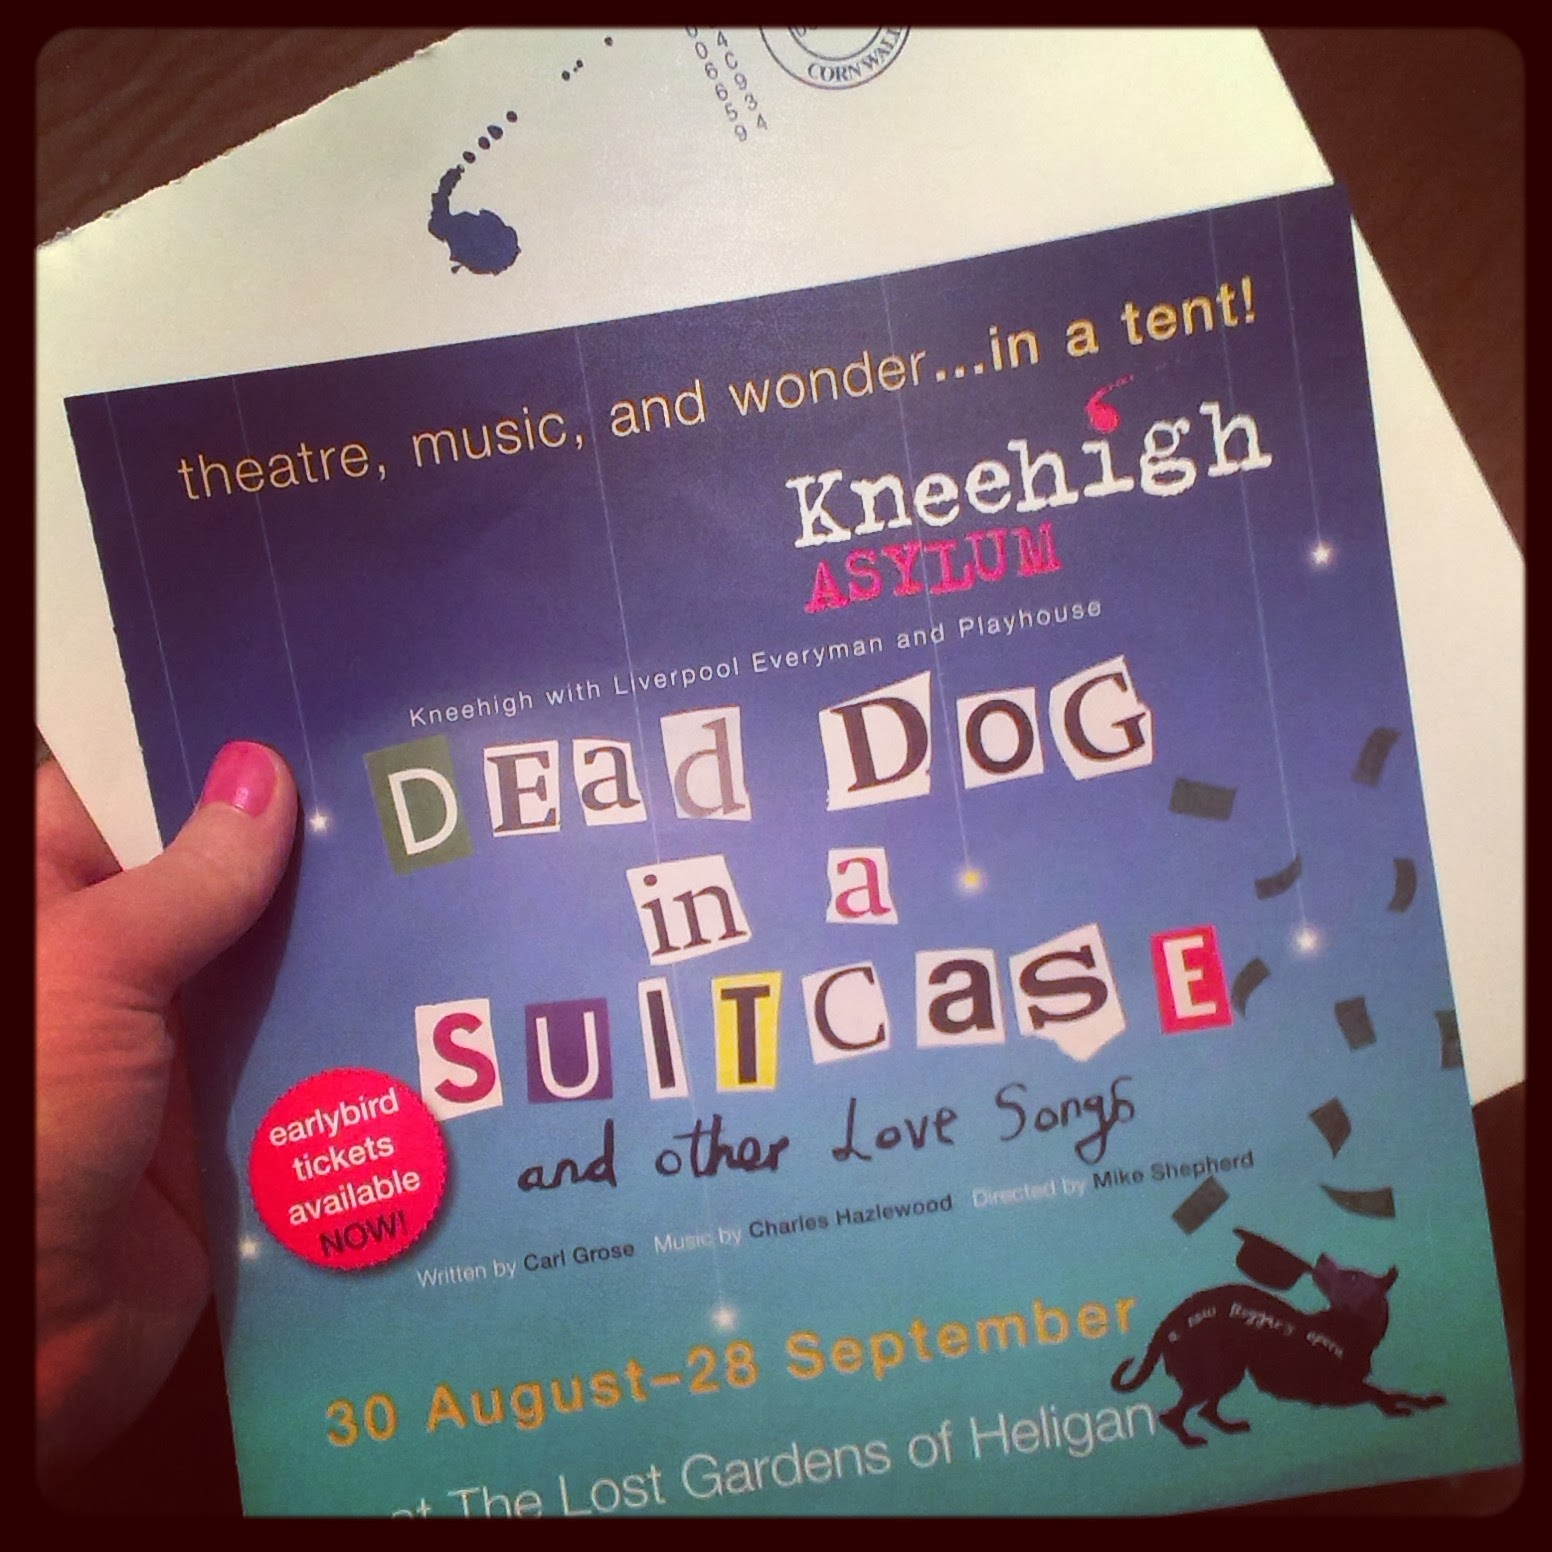 Kneehigh Theatre's new show - Dead Dog in a Suitcase (and other love stories)